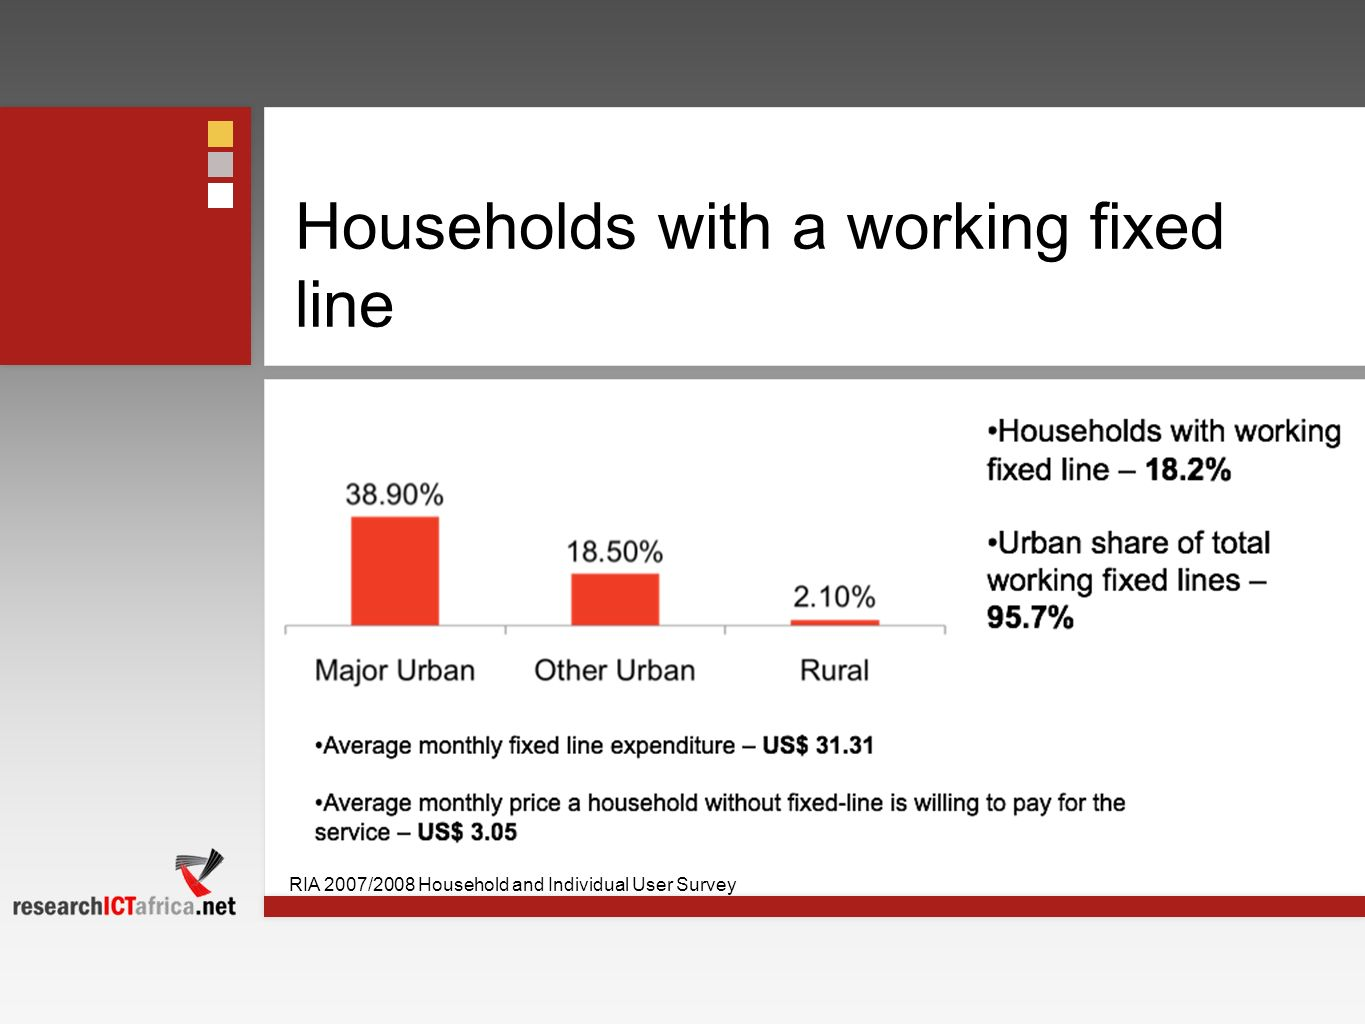 Households with a working fixed line